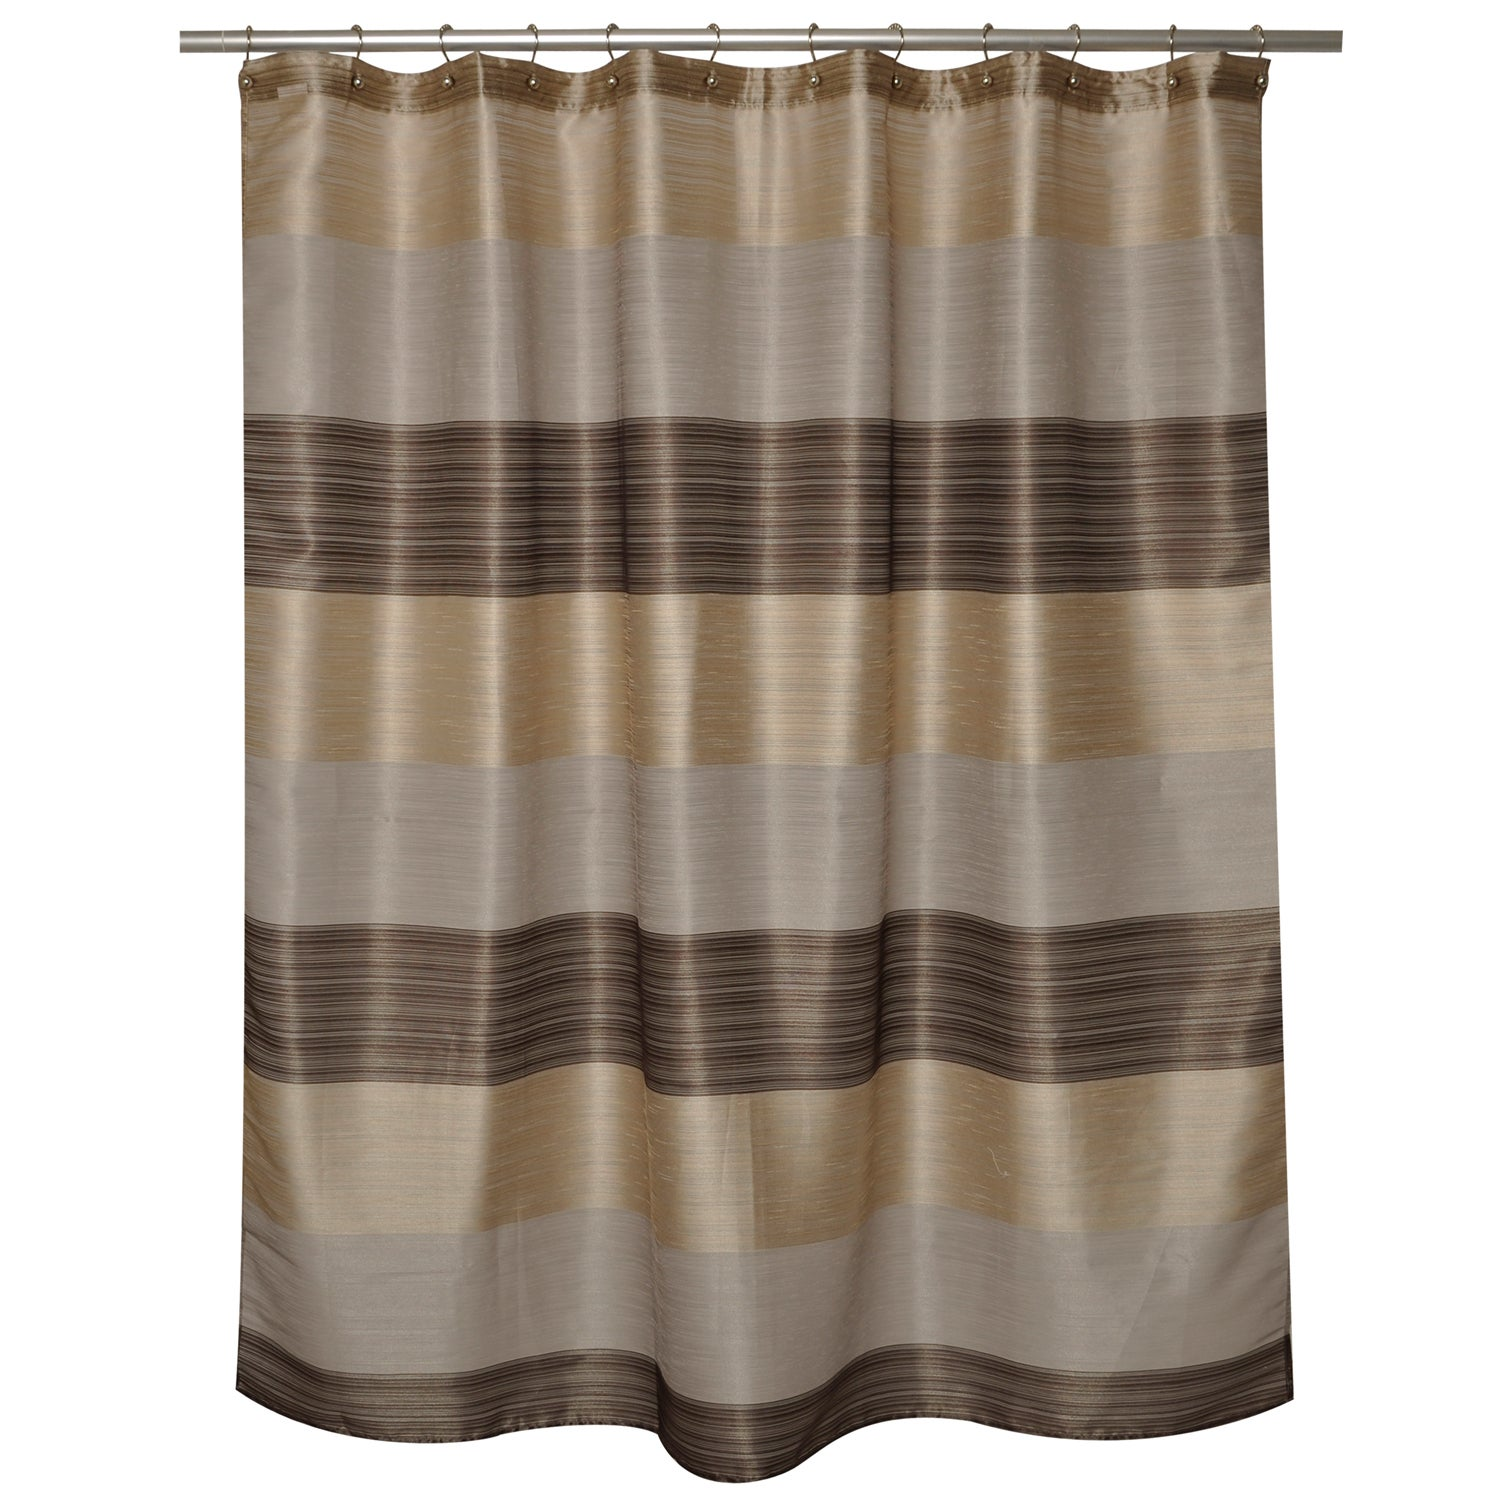 Alys Oil-rubbed Bronze Bath Accessory with Shower Curtain 4-piece Set -  Free Shipping Today - Overstock.com - 11544978